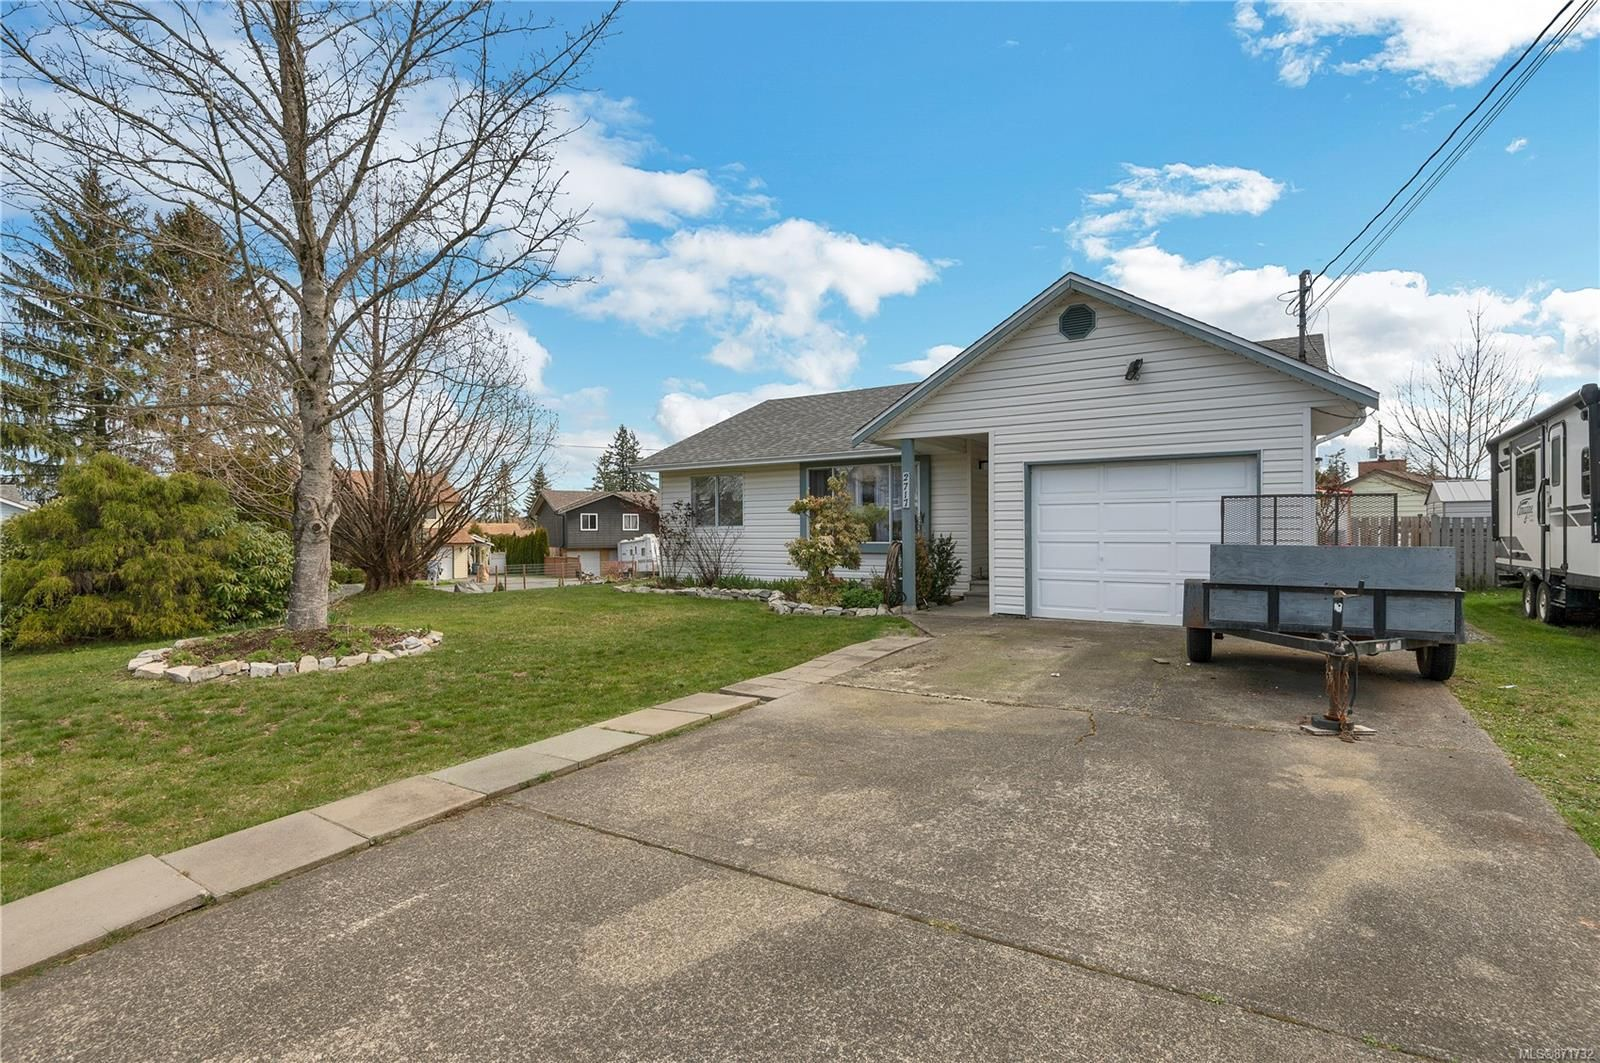 Main Photo: 2717 Apple Dr in : CR Willow Point House for sale (Campbell River)  : MLS®# 871732